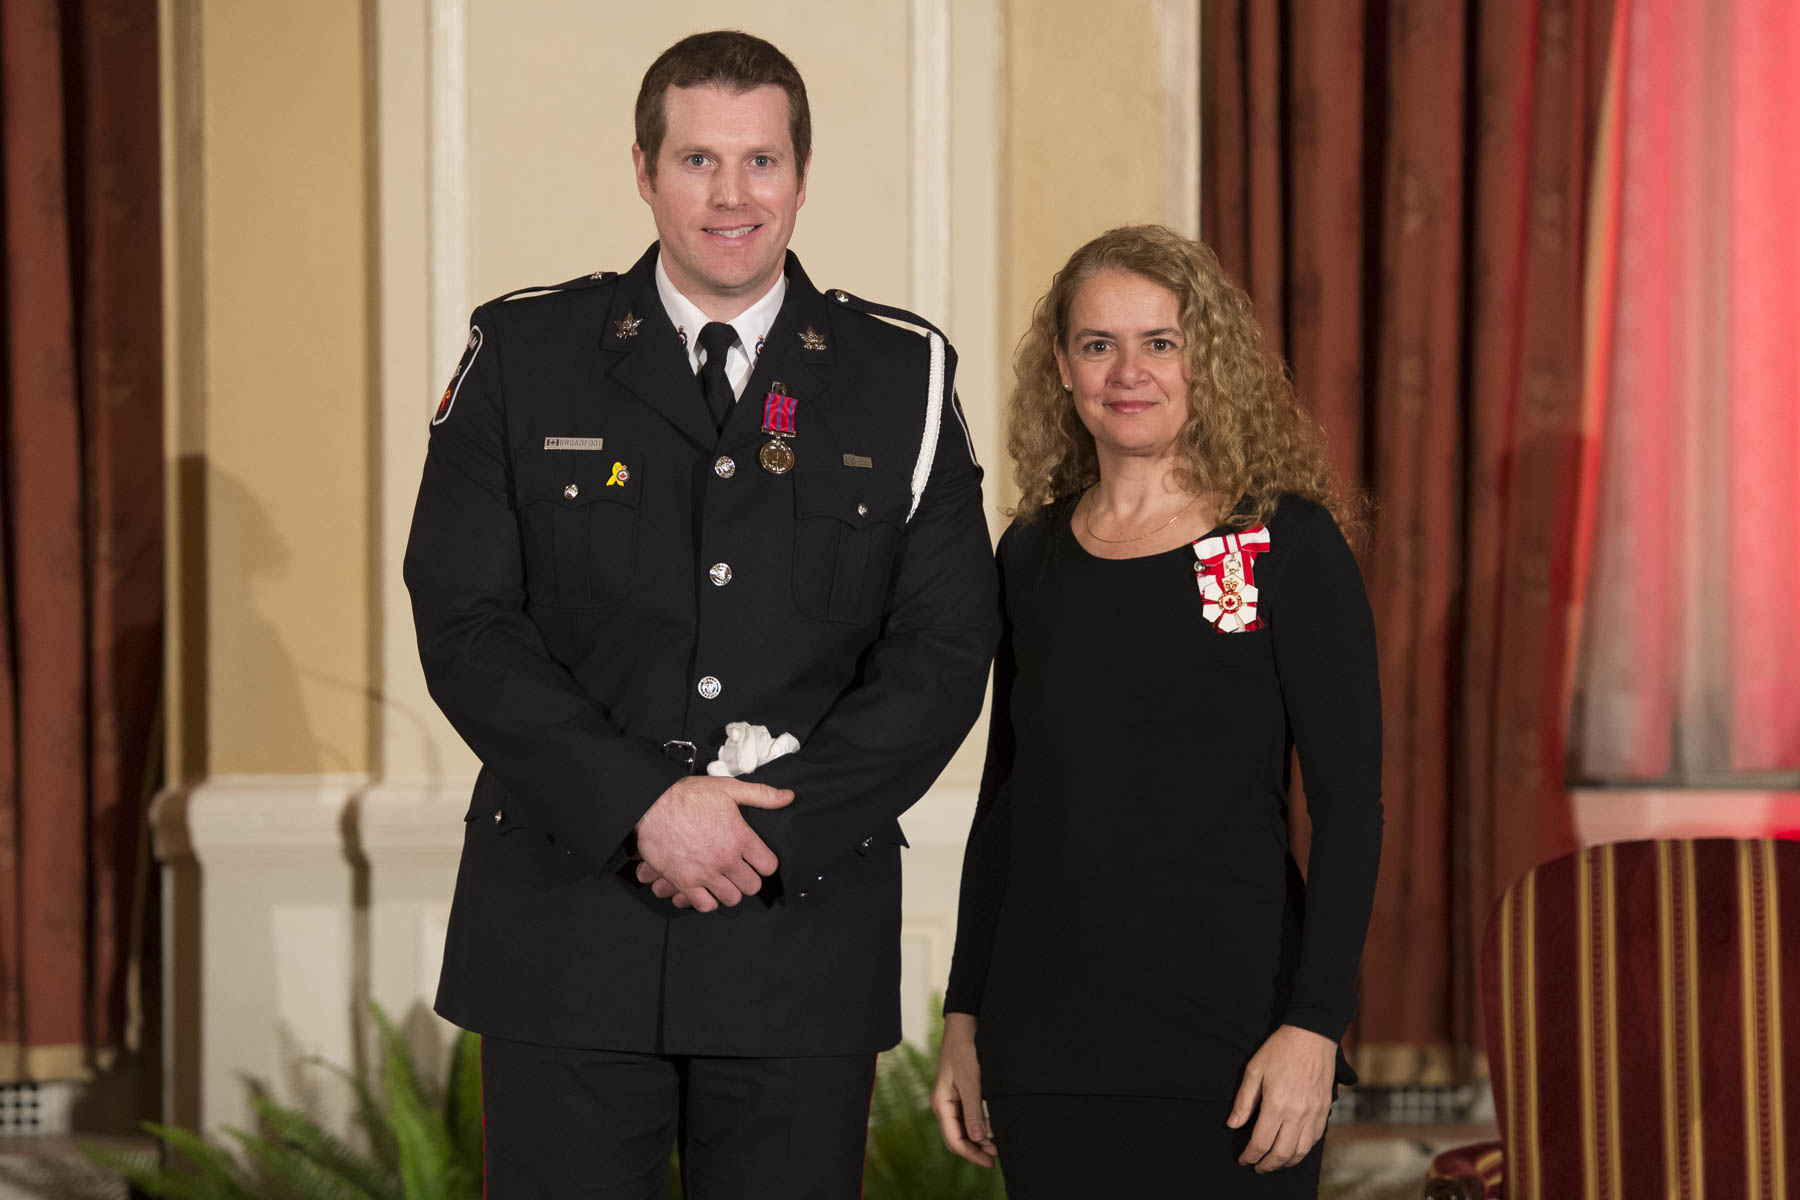 On January 14, 2014, Constable Thomas Broadfoot, of the Durham Regional Police Service, rescued a man following a car accident in Ajax, Ontario. He crawled into the overturned vehicle on his hands and knees, but was briefly forced back by the strong fumes of gasoline pooling inside the car. Despite the risk of a fire or explosion, he re-entered the vehicle to shield the victim from the gasoline exposure and remained with him until emergency services arrived.